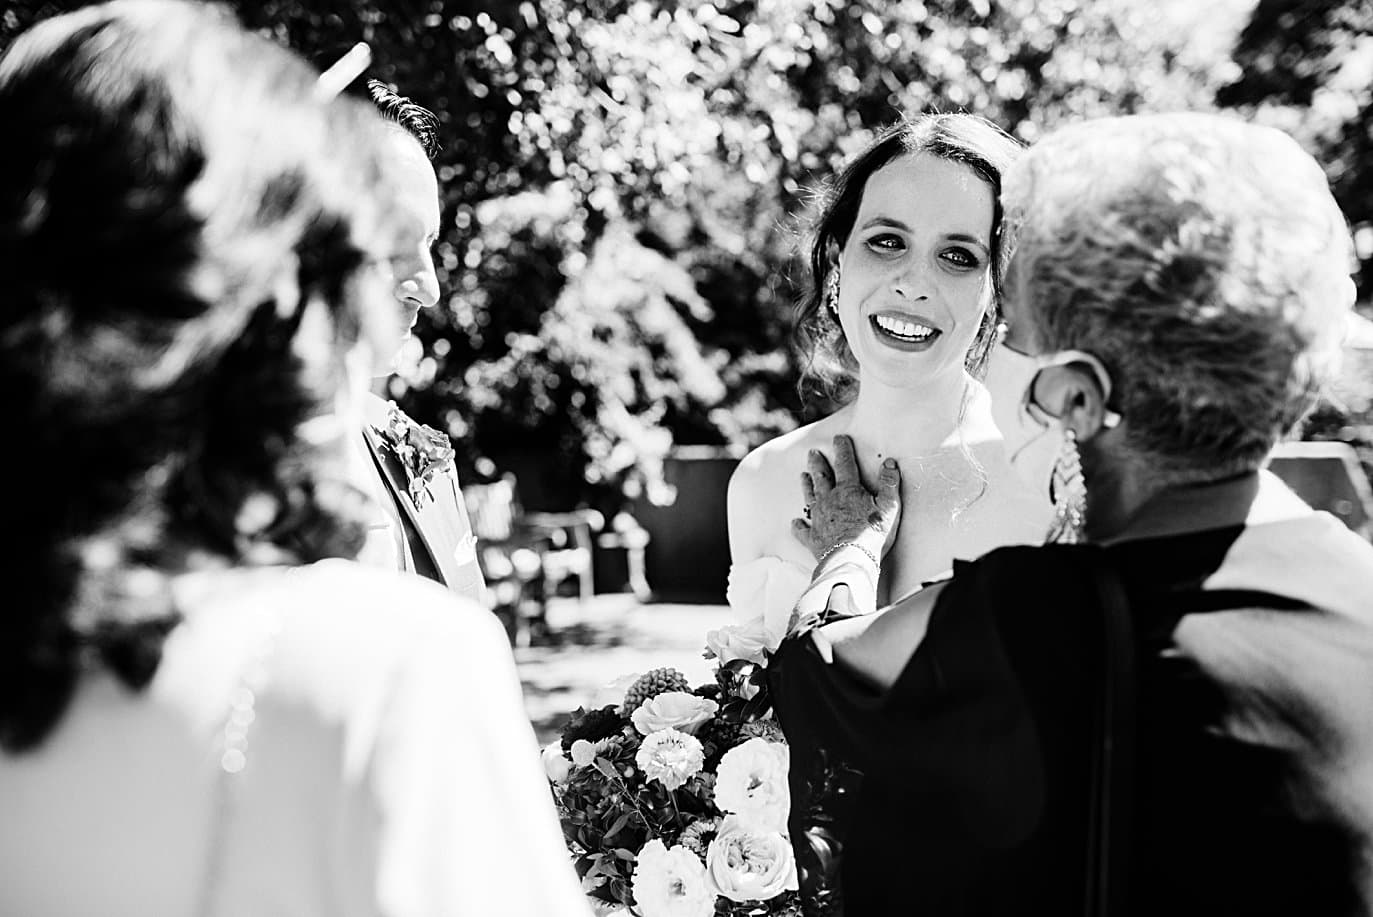 bride and groom embrace family after ceremony at Denver Botanic Gardens microwedding by Boulder wedding photographer Jennie Crate